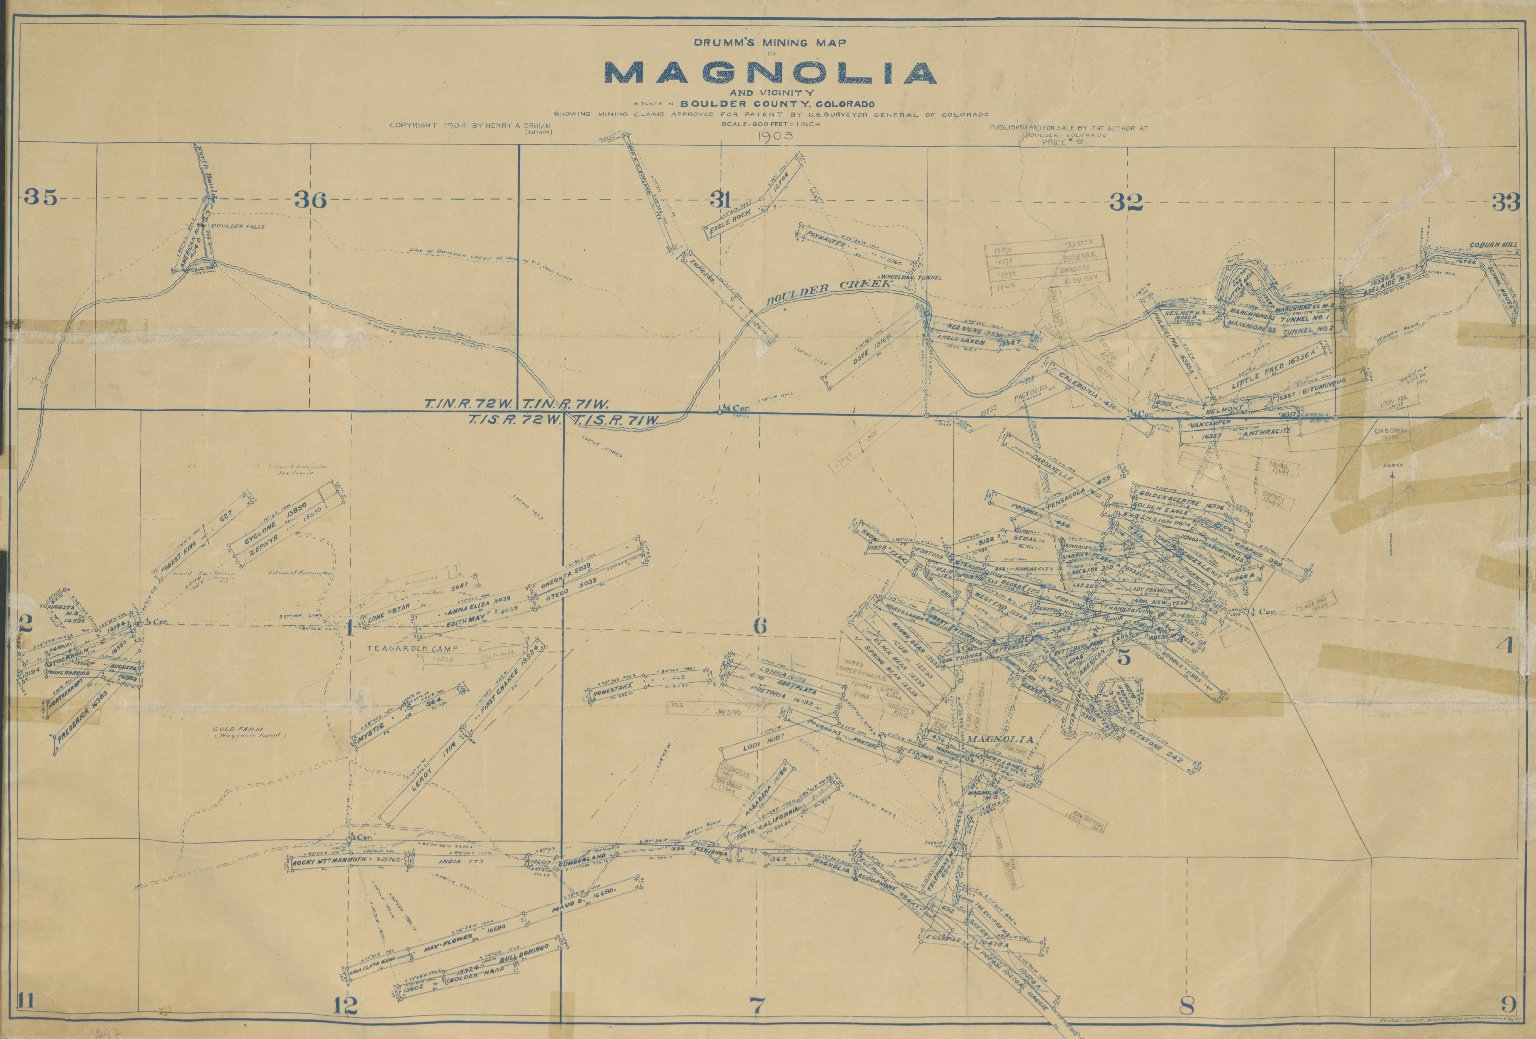 Drumm's Mining Map of Magnolia and Vicinity